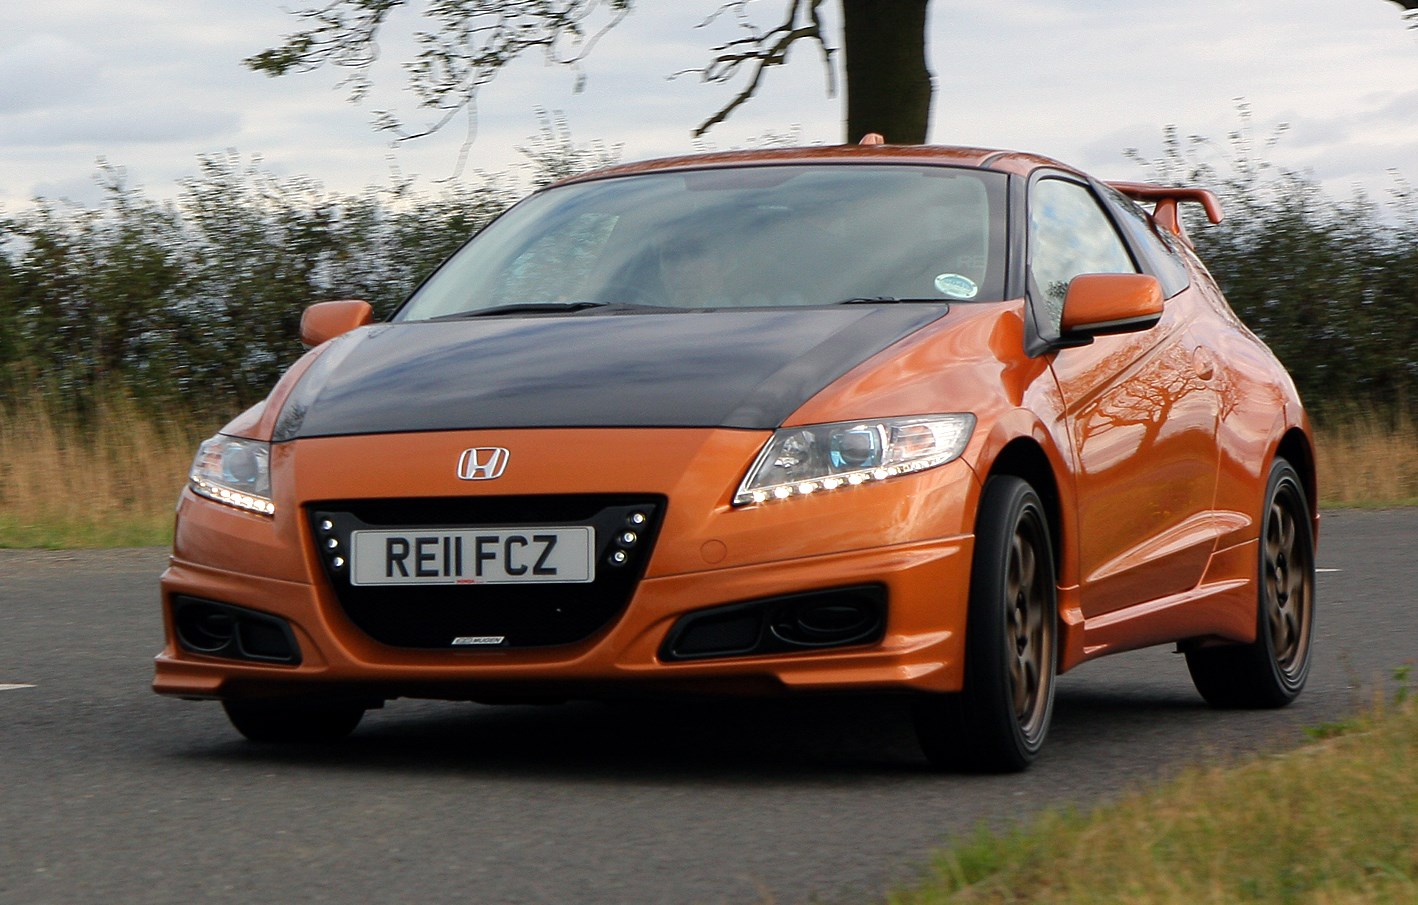 honda cr z hatchback review 2010 2013 parkers. Black Bedroom Furniture Sets. Home Design Ideas